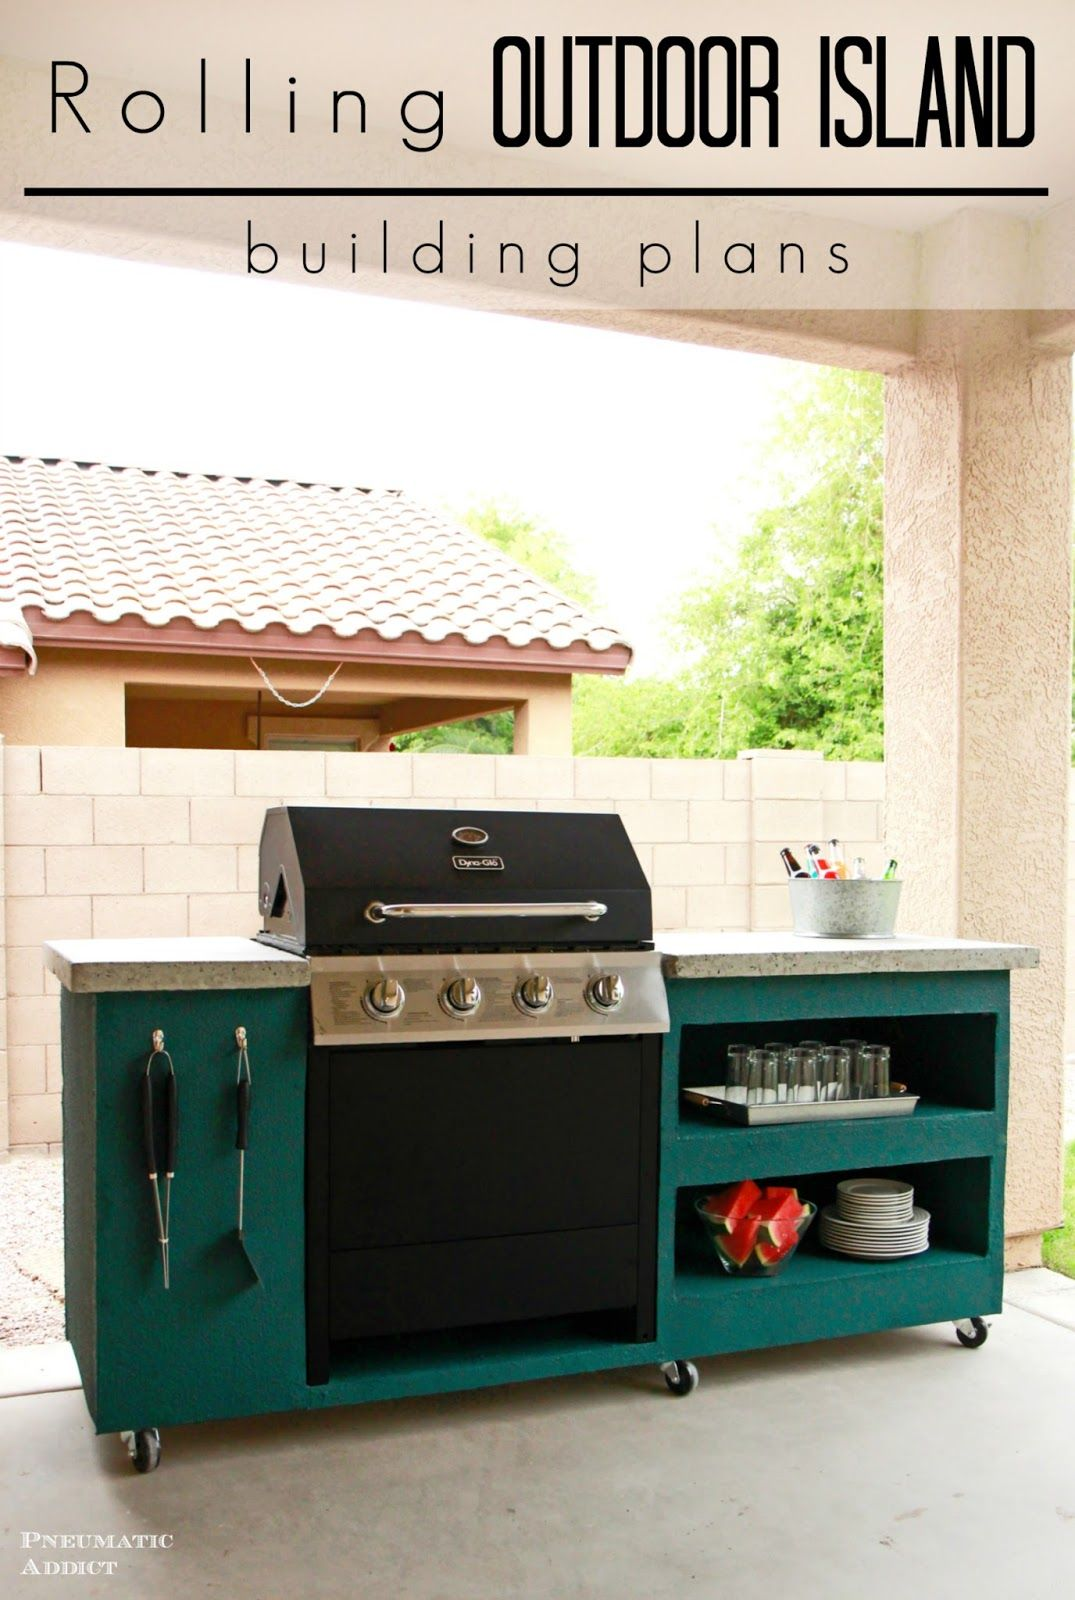 DIY Rolling Outdoor Kitchen Building Plans   This Is EXACTLY What I Want  (Except With